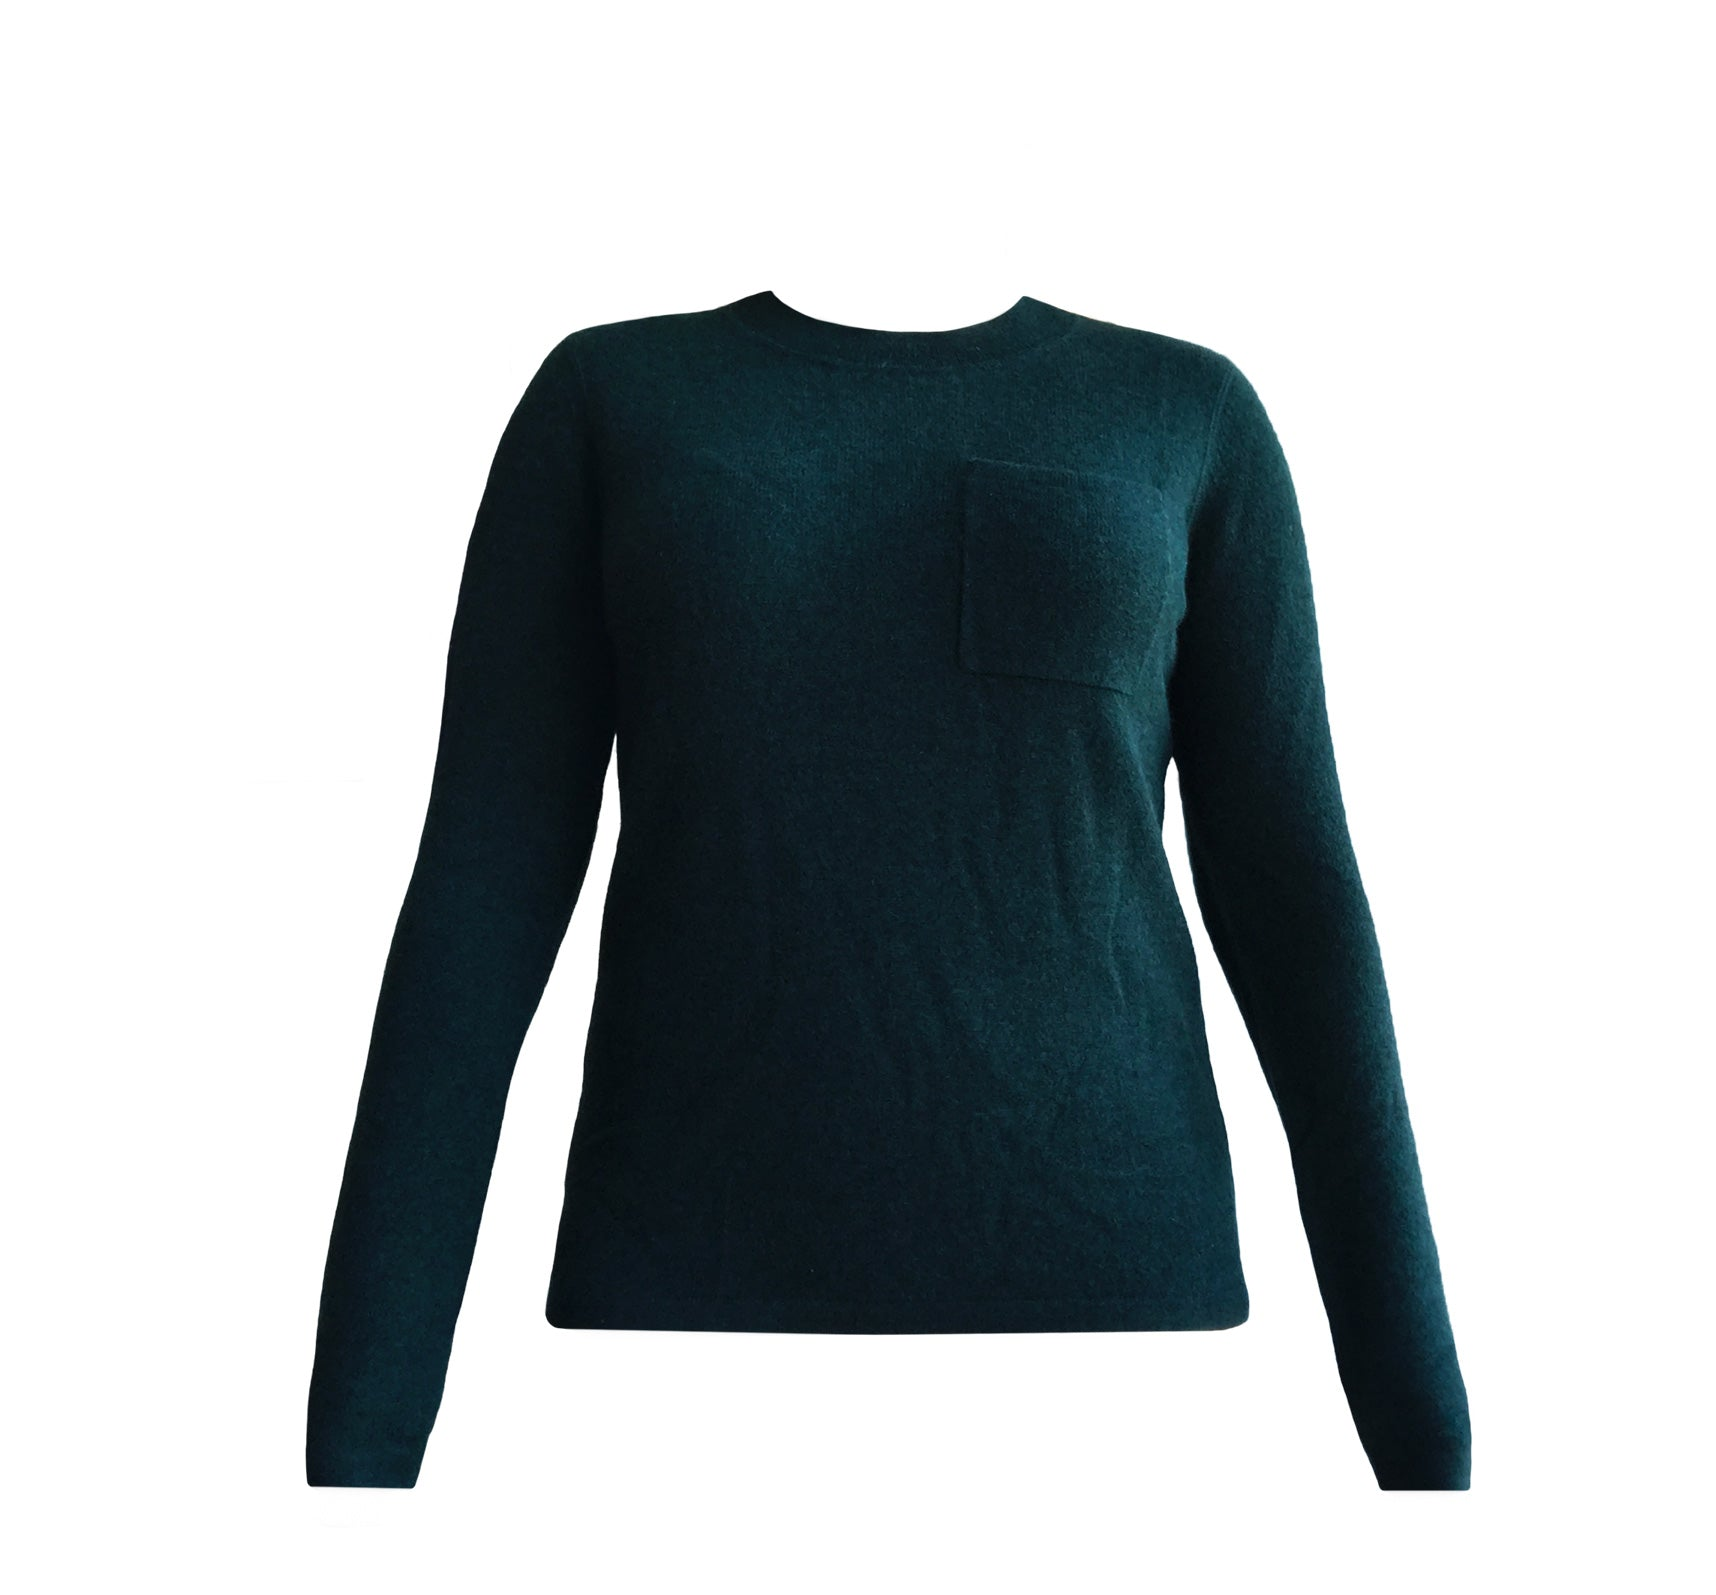 Cashmere Pocket Sweater in Emerald Green